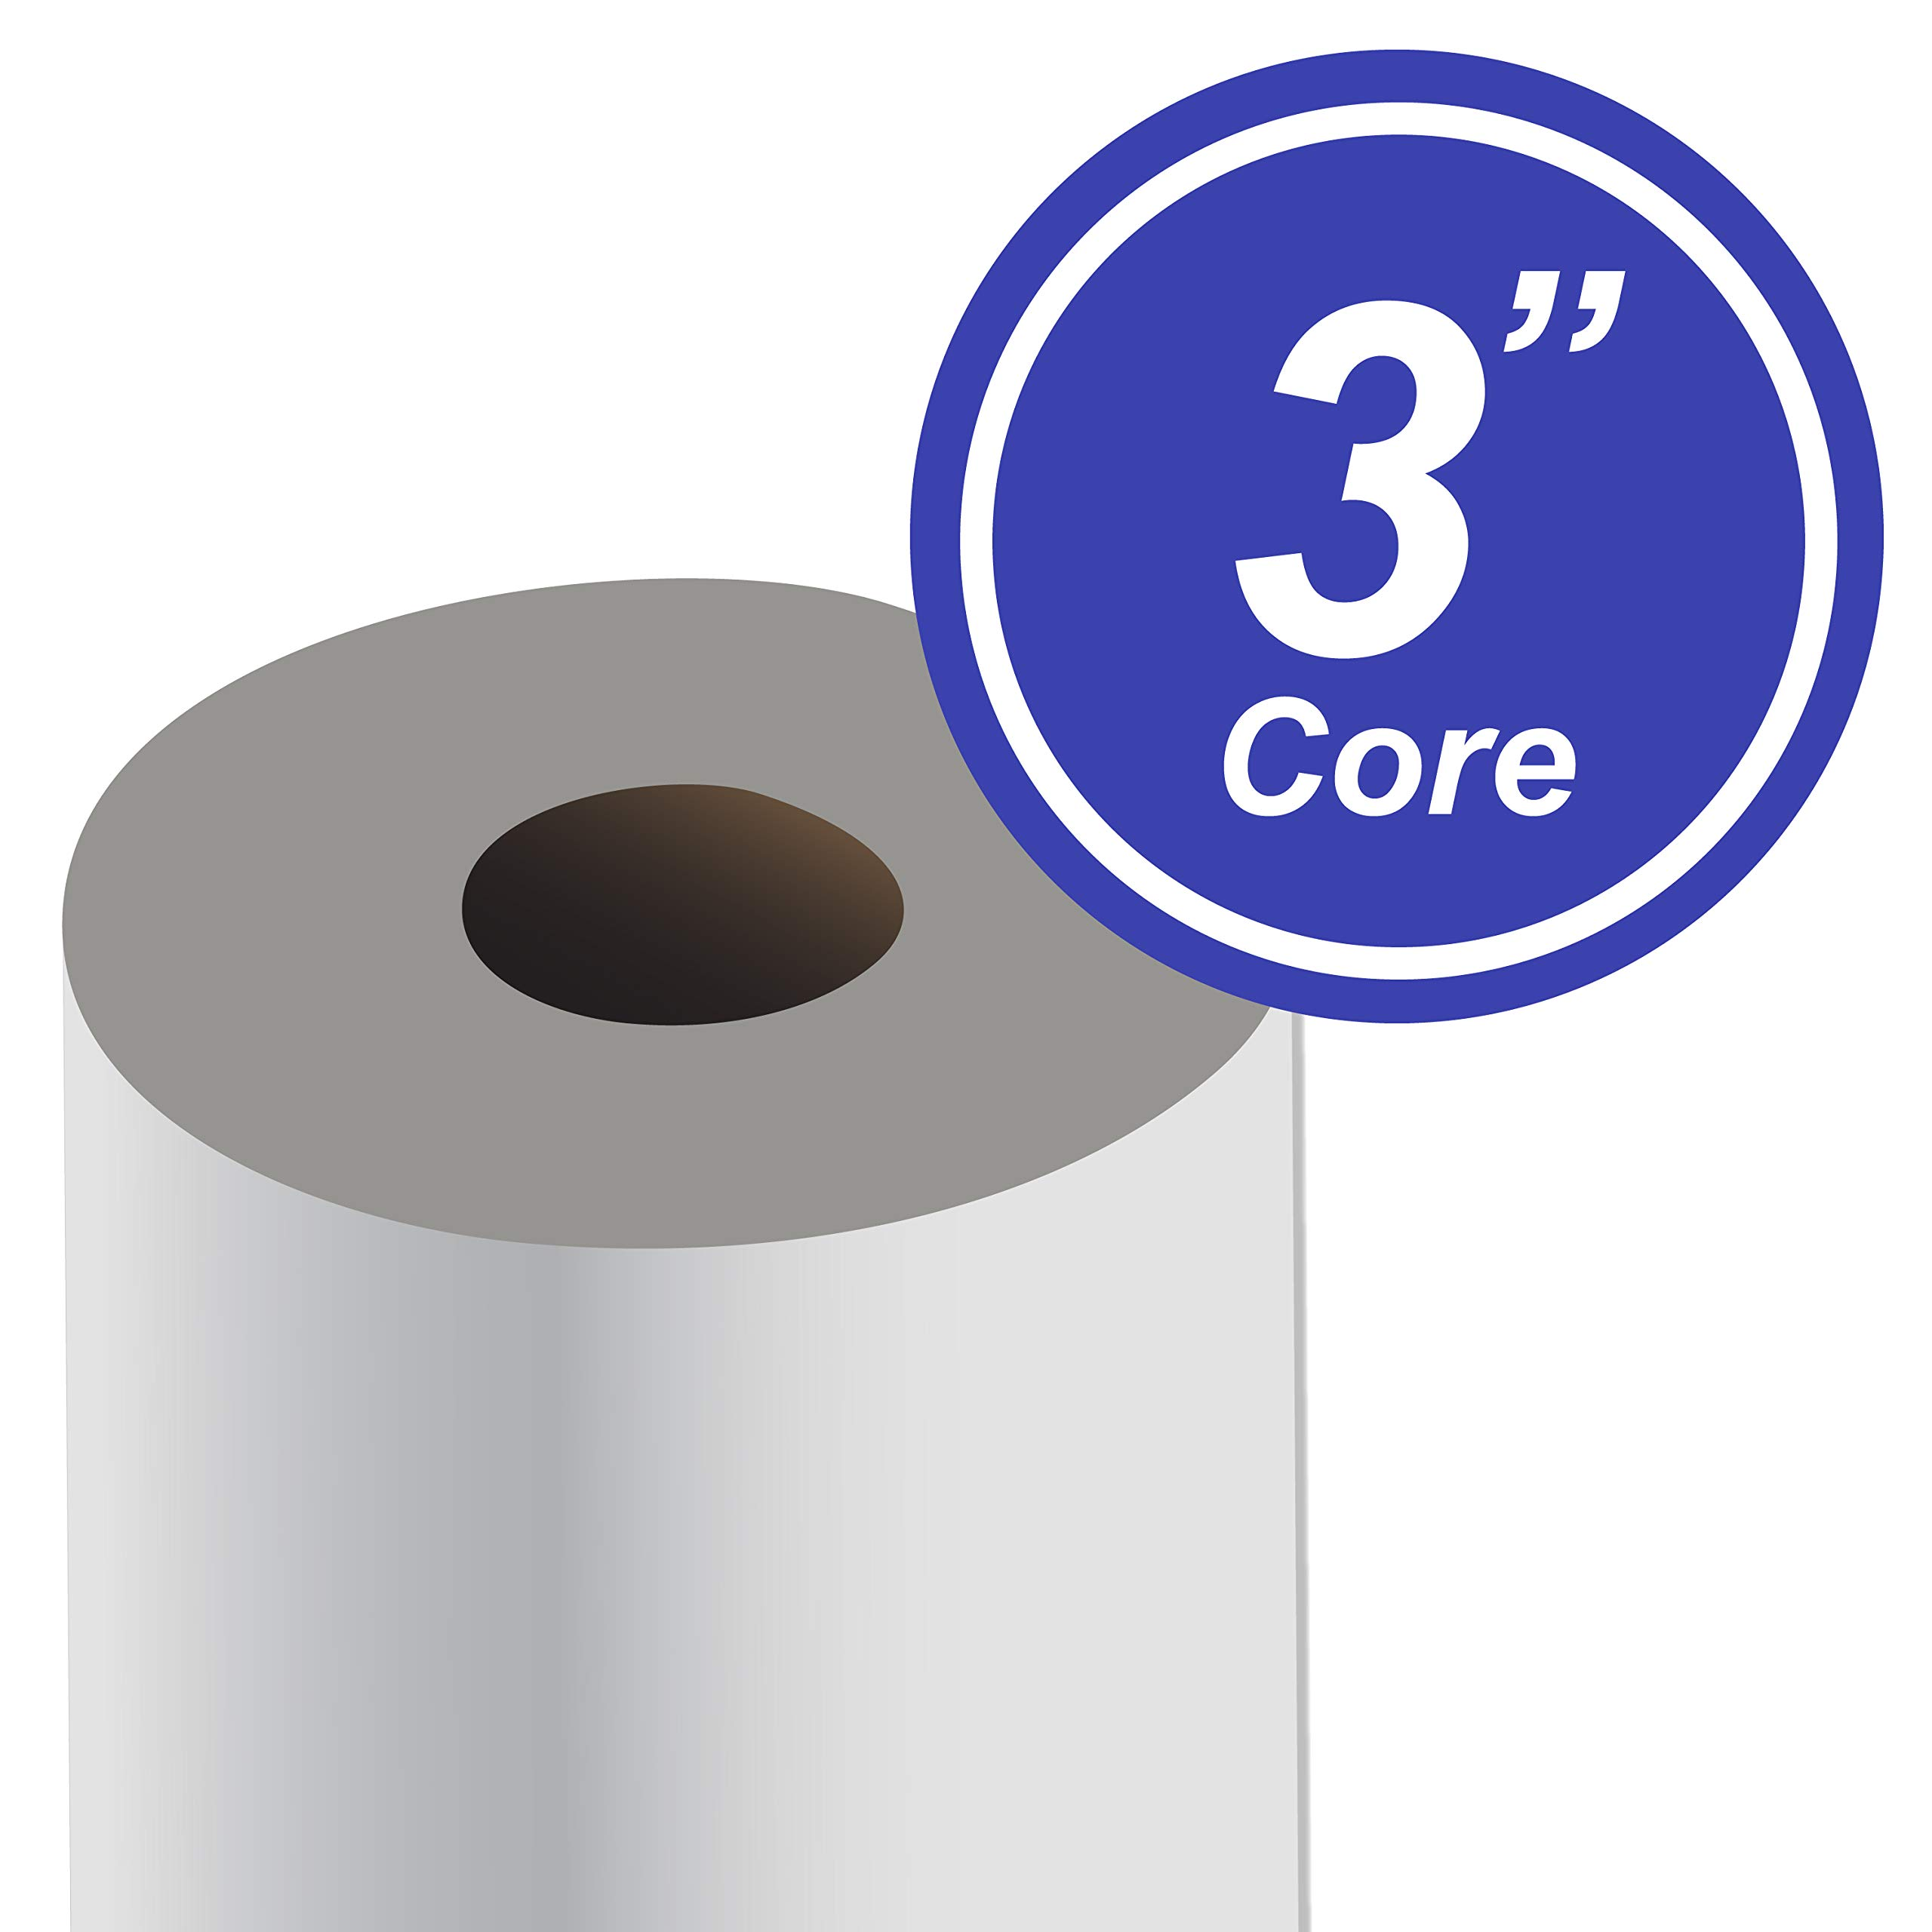 """Alliance Paper Rolls, Bond Engineering, 24"""" x 500', 92 Bright, 20lb - 45 Rolls per Pallet with 3"""" Core by Alliance (Image #3)"""